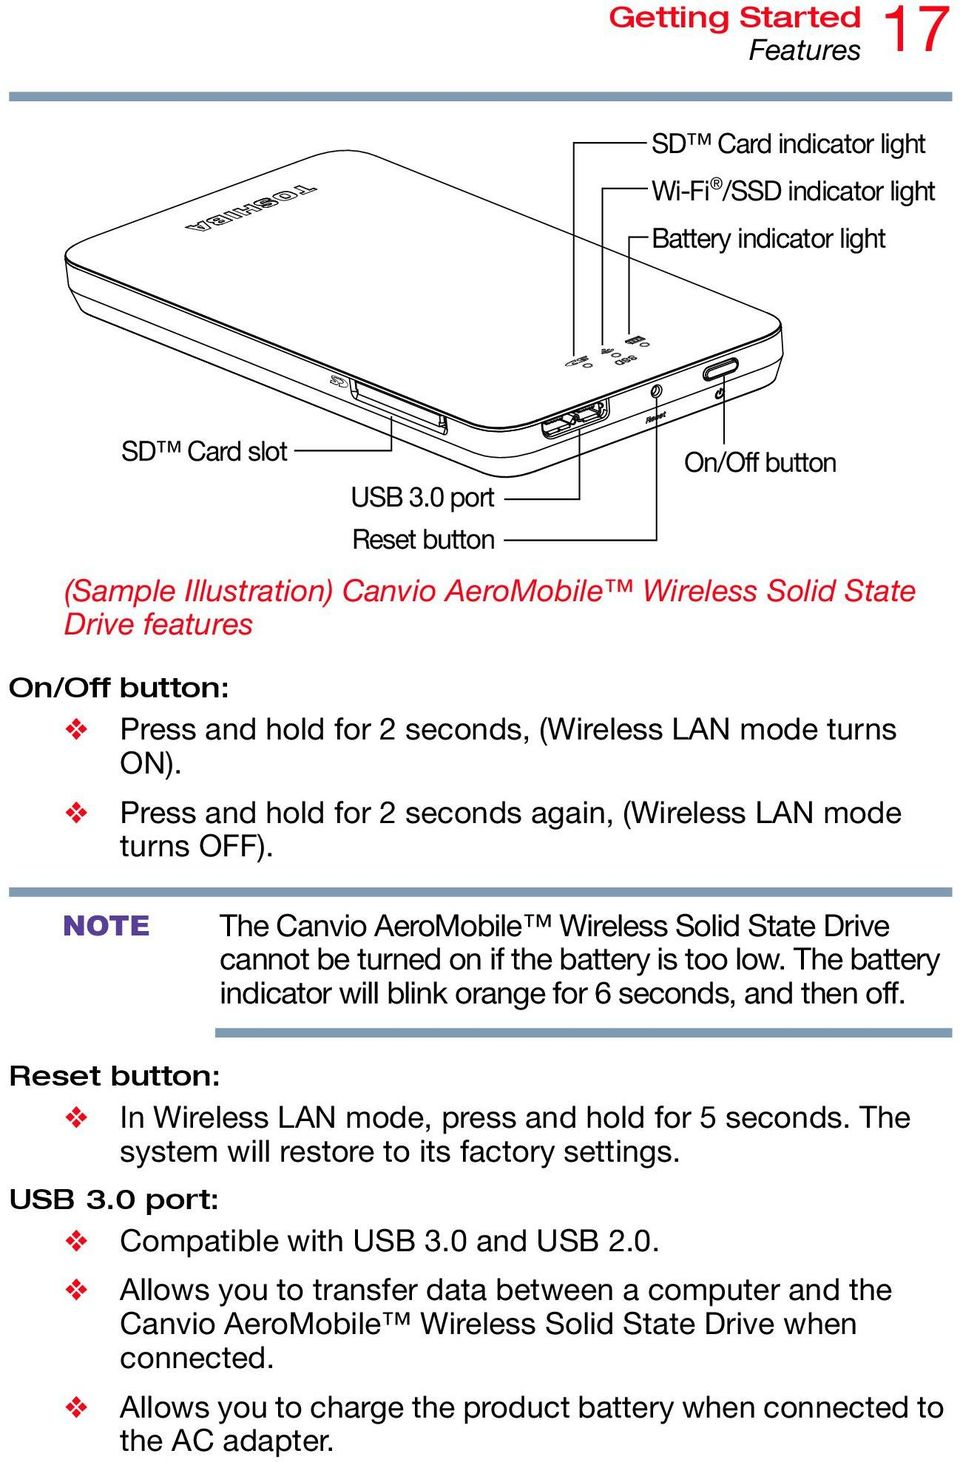 Press and hold for 2 seconds again, (Wireless LAN mode turns OFF). NOTE The Canvio AeroMobile Wireless Solid State Drive cannot be turned on if the battery is too low.